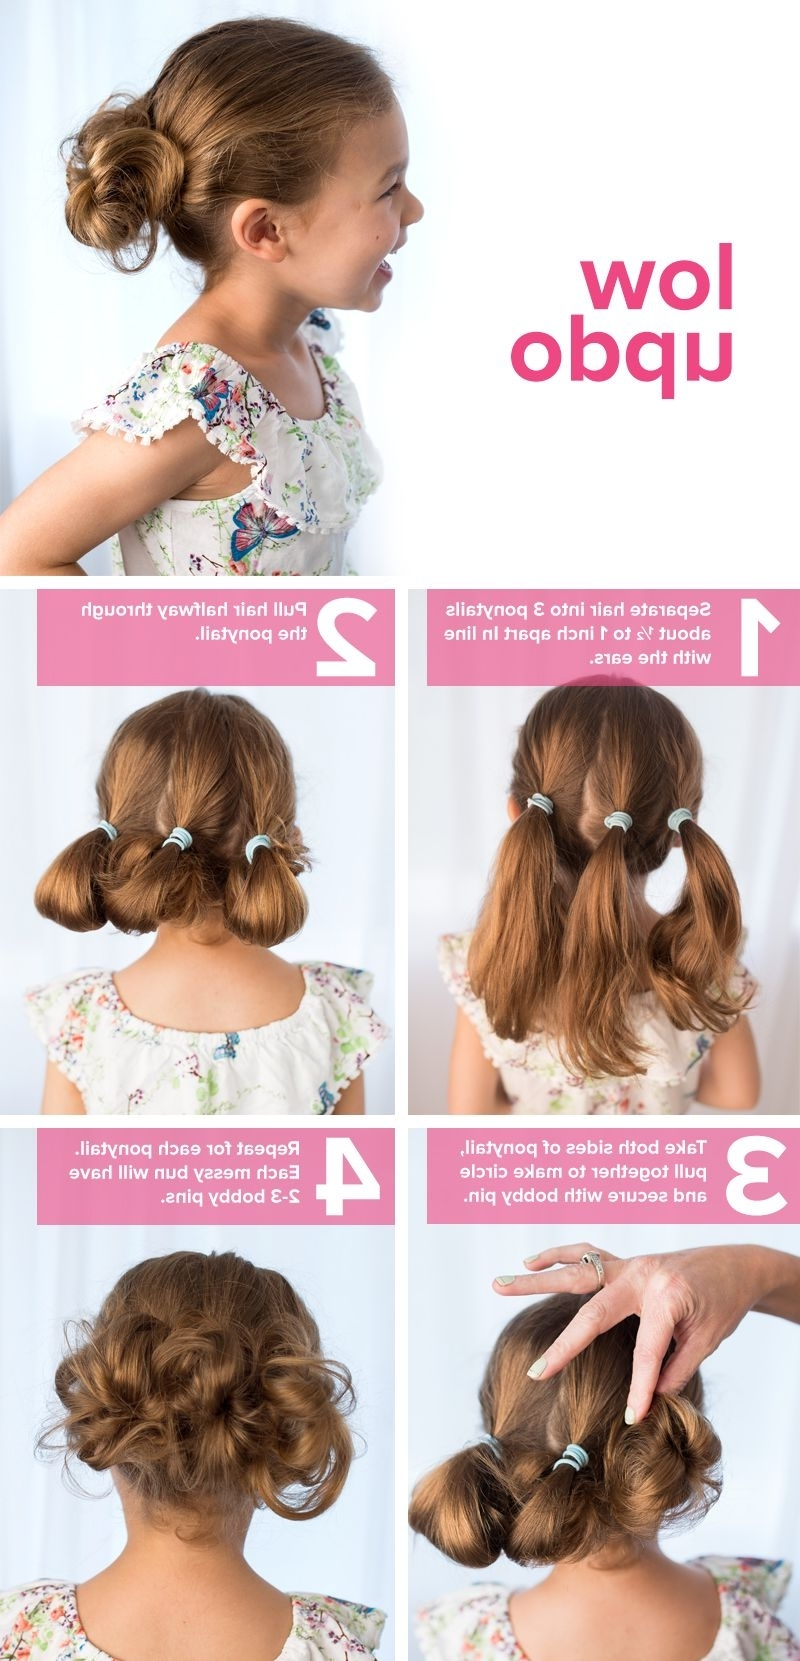 5 Fast, Easy, Cute Hairstyles For Girls | Low Updo, Updo And Kids S Inside Sporty Updo Hairstyles For Short Hair (View 6 of 15)